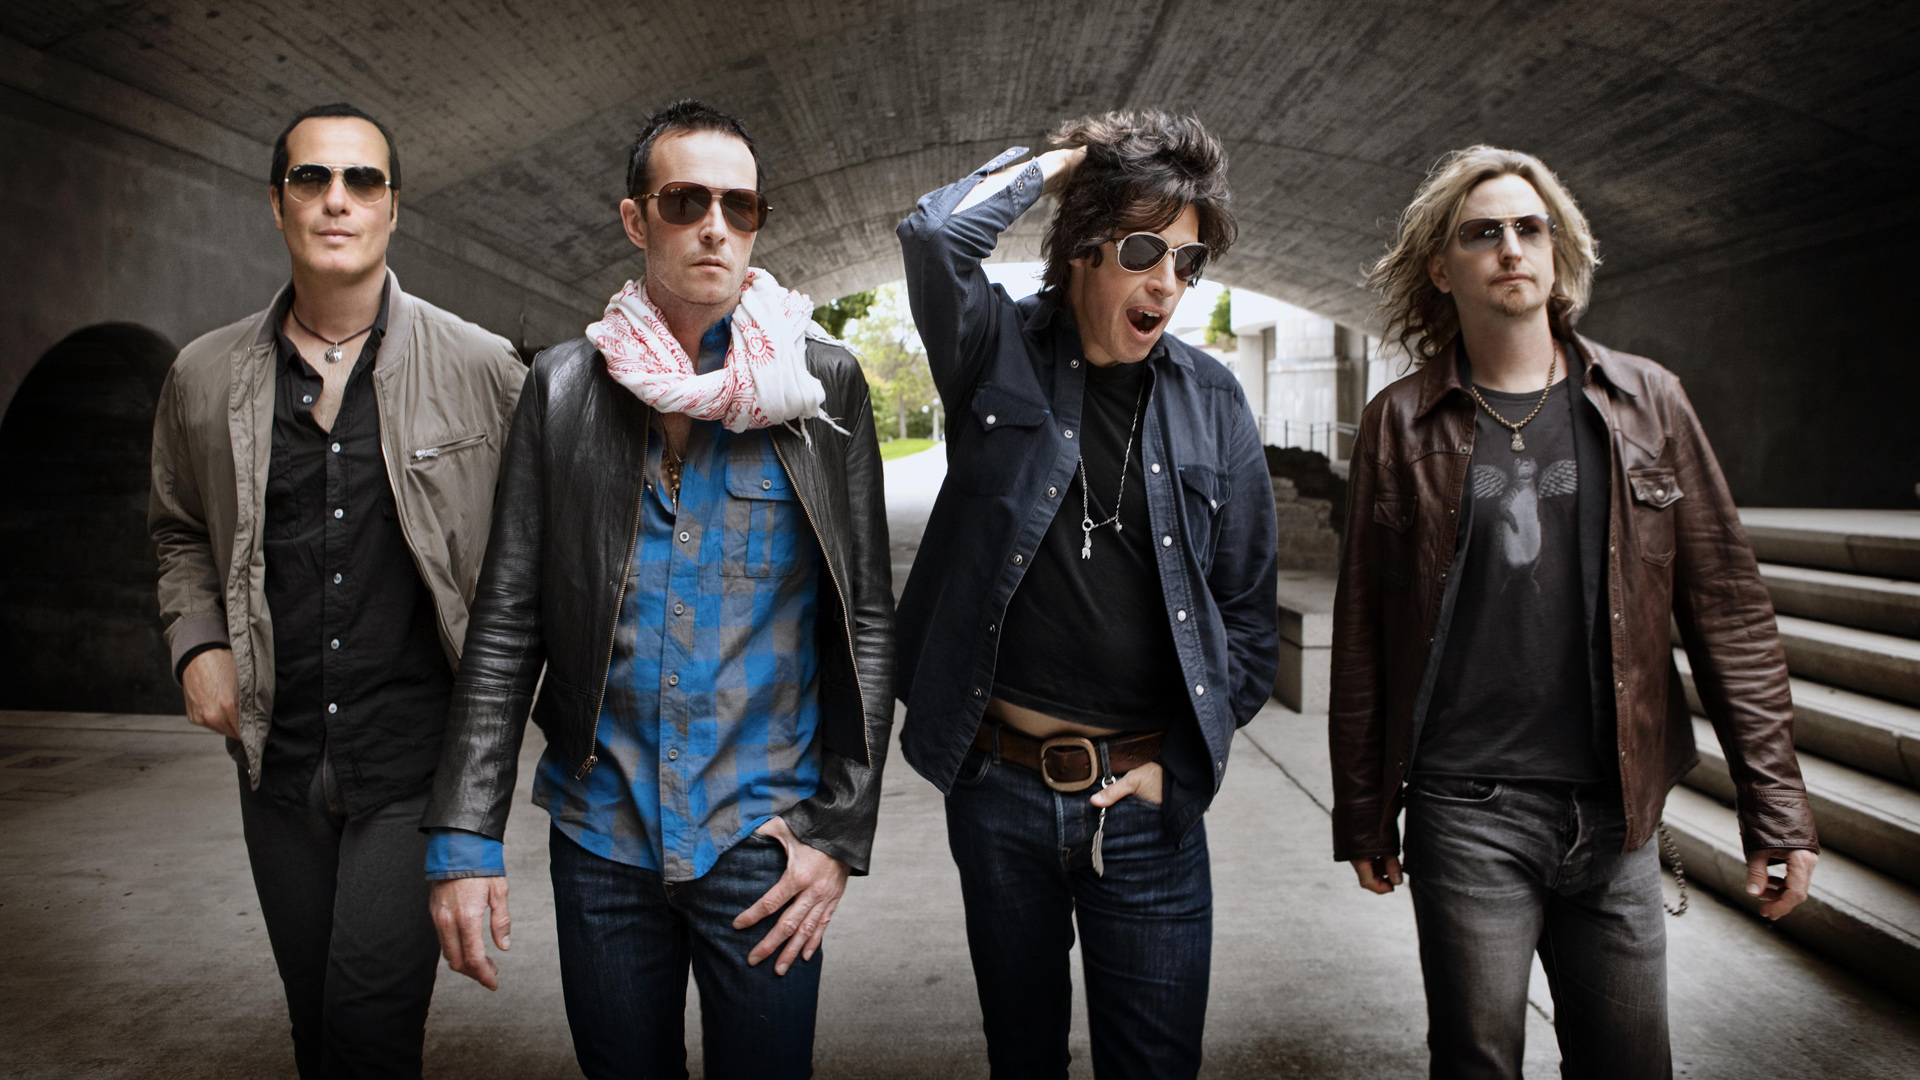 Nice Images Collection: Stone Temple Pilots Desktop Wallpapers